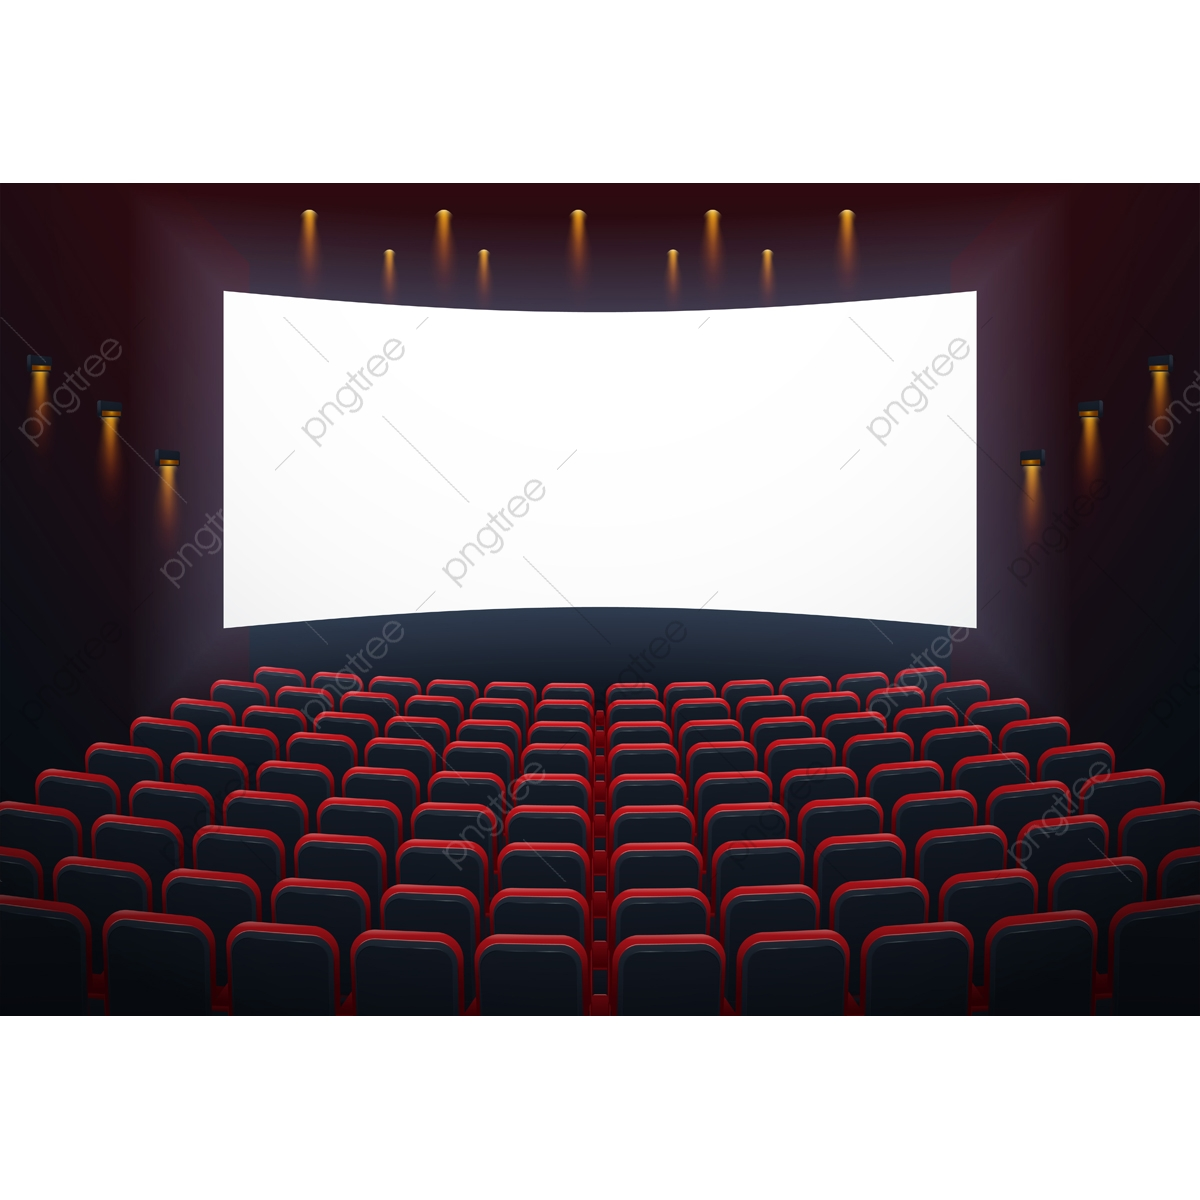 An Illustration Of The Interior Of A Cinema Movie Theatre With C Movie Cinema Theater Png And Vector With Transparent Background For Free Download